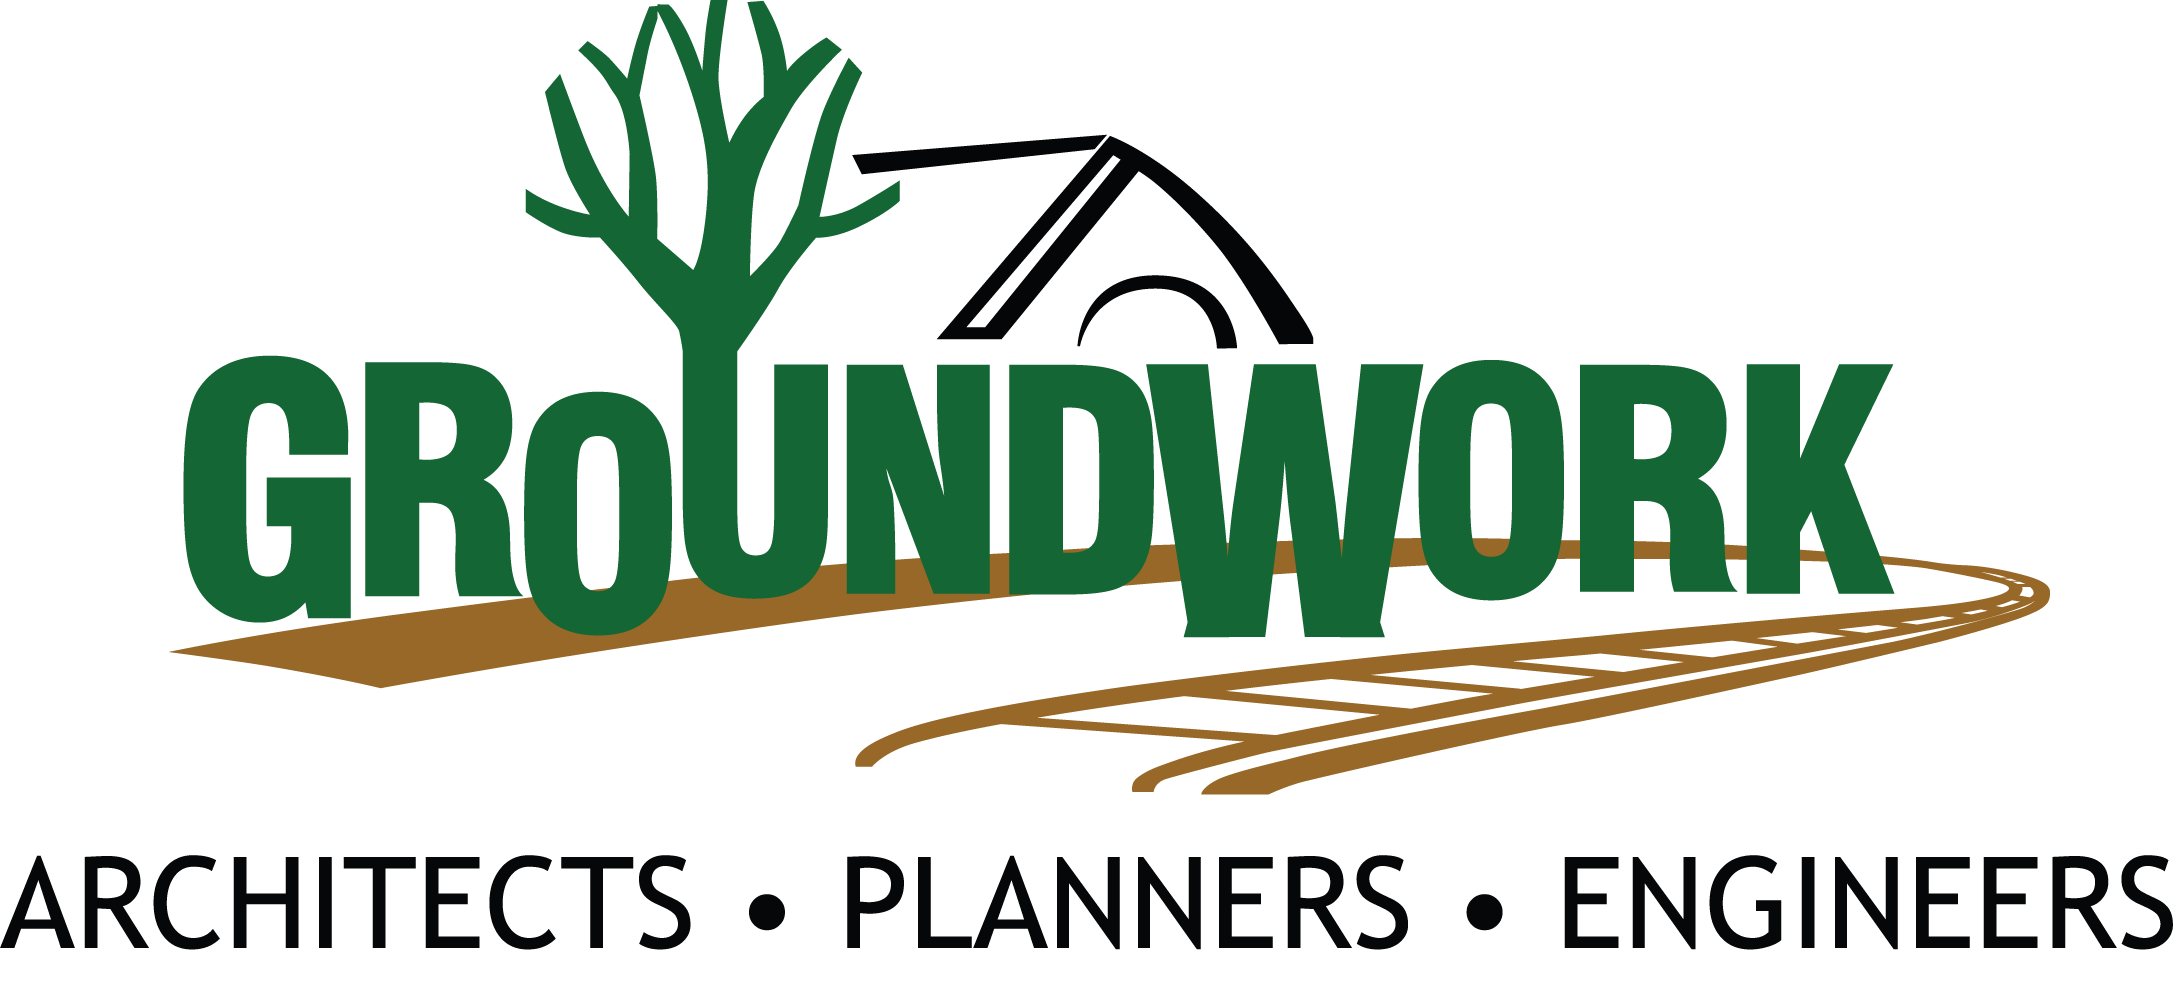 Click on the image to visit the website of GROUNDWORK, Ltd